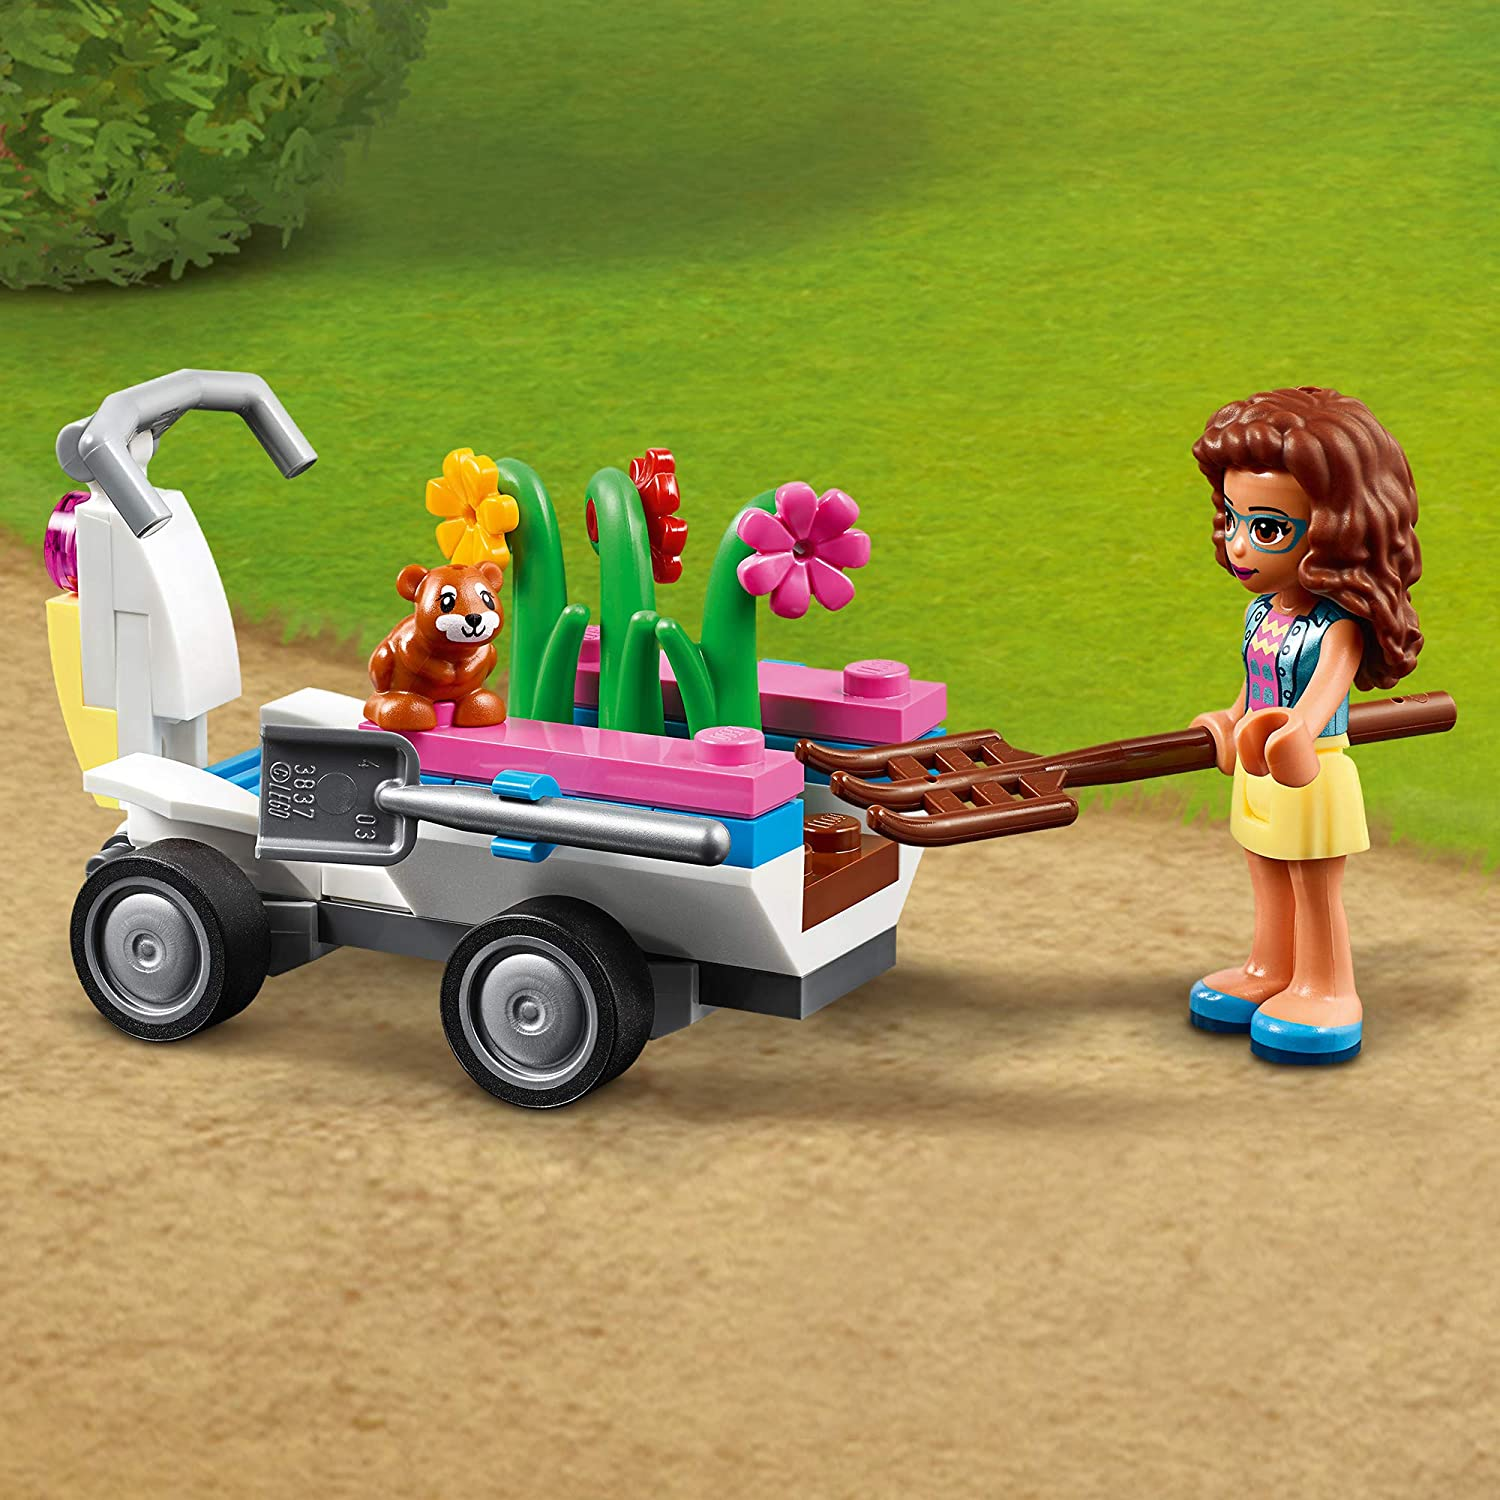 LEGO 41425 Friends Olivias Flower Garden Play Set with Tools Zobo the Robot /& Toy Go Kart